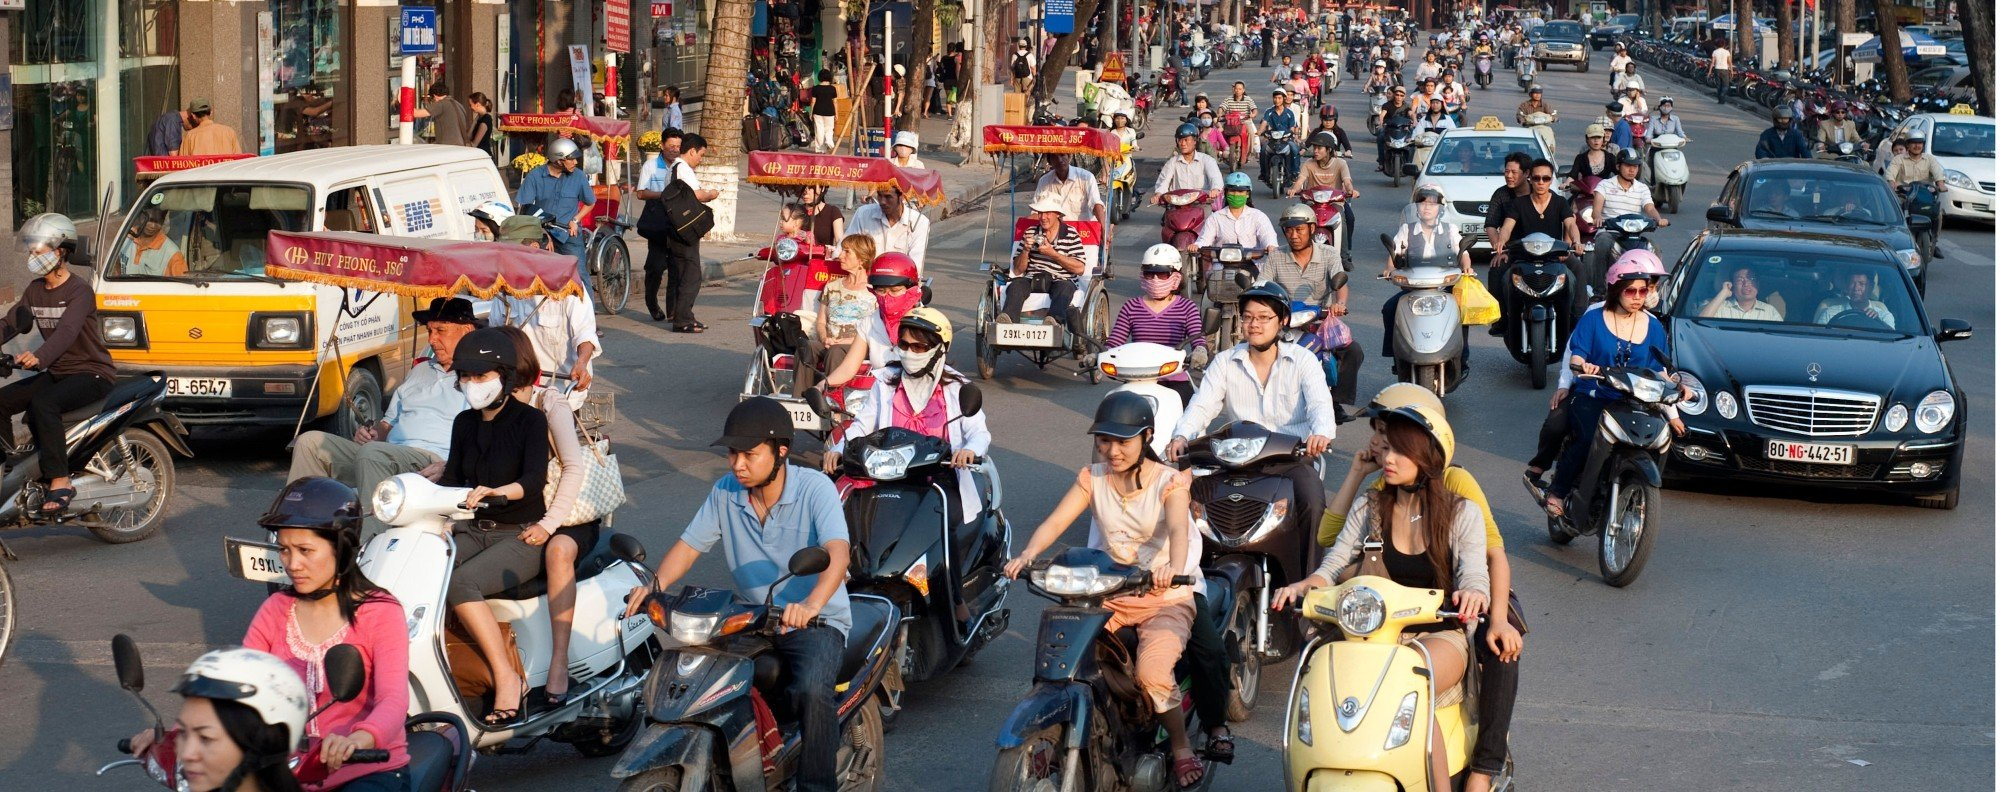 Motobikes fill the roads in Hanoi, Vietnam. Handout photo